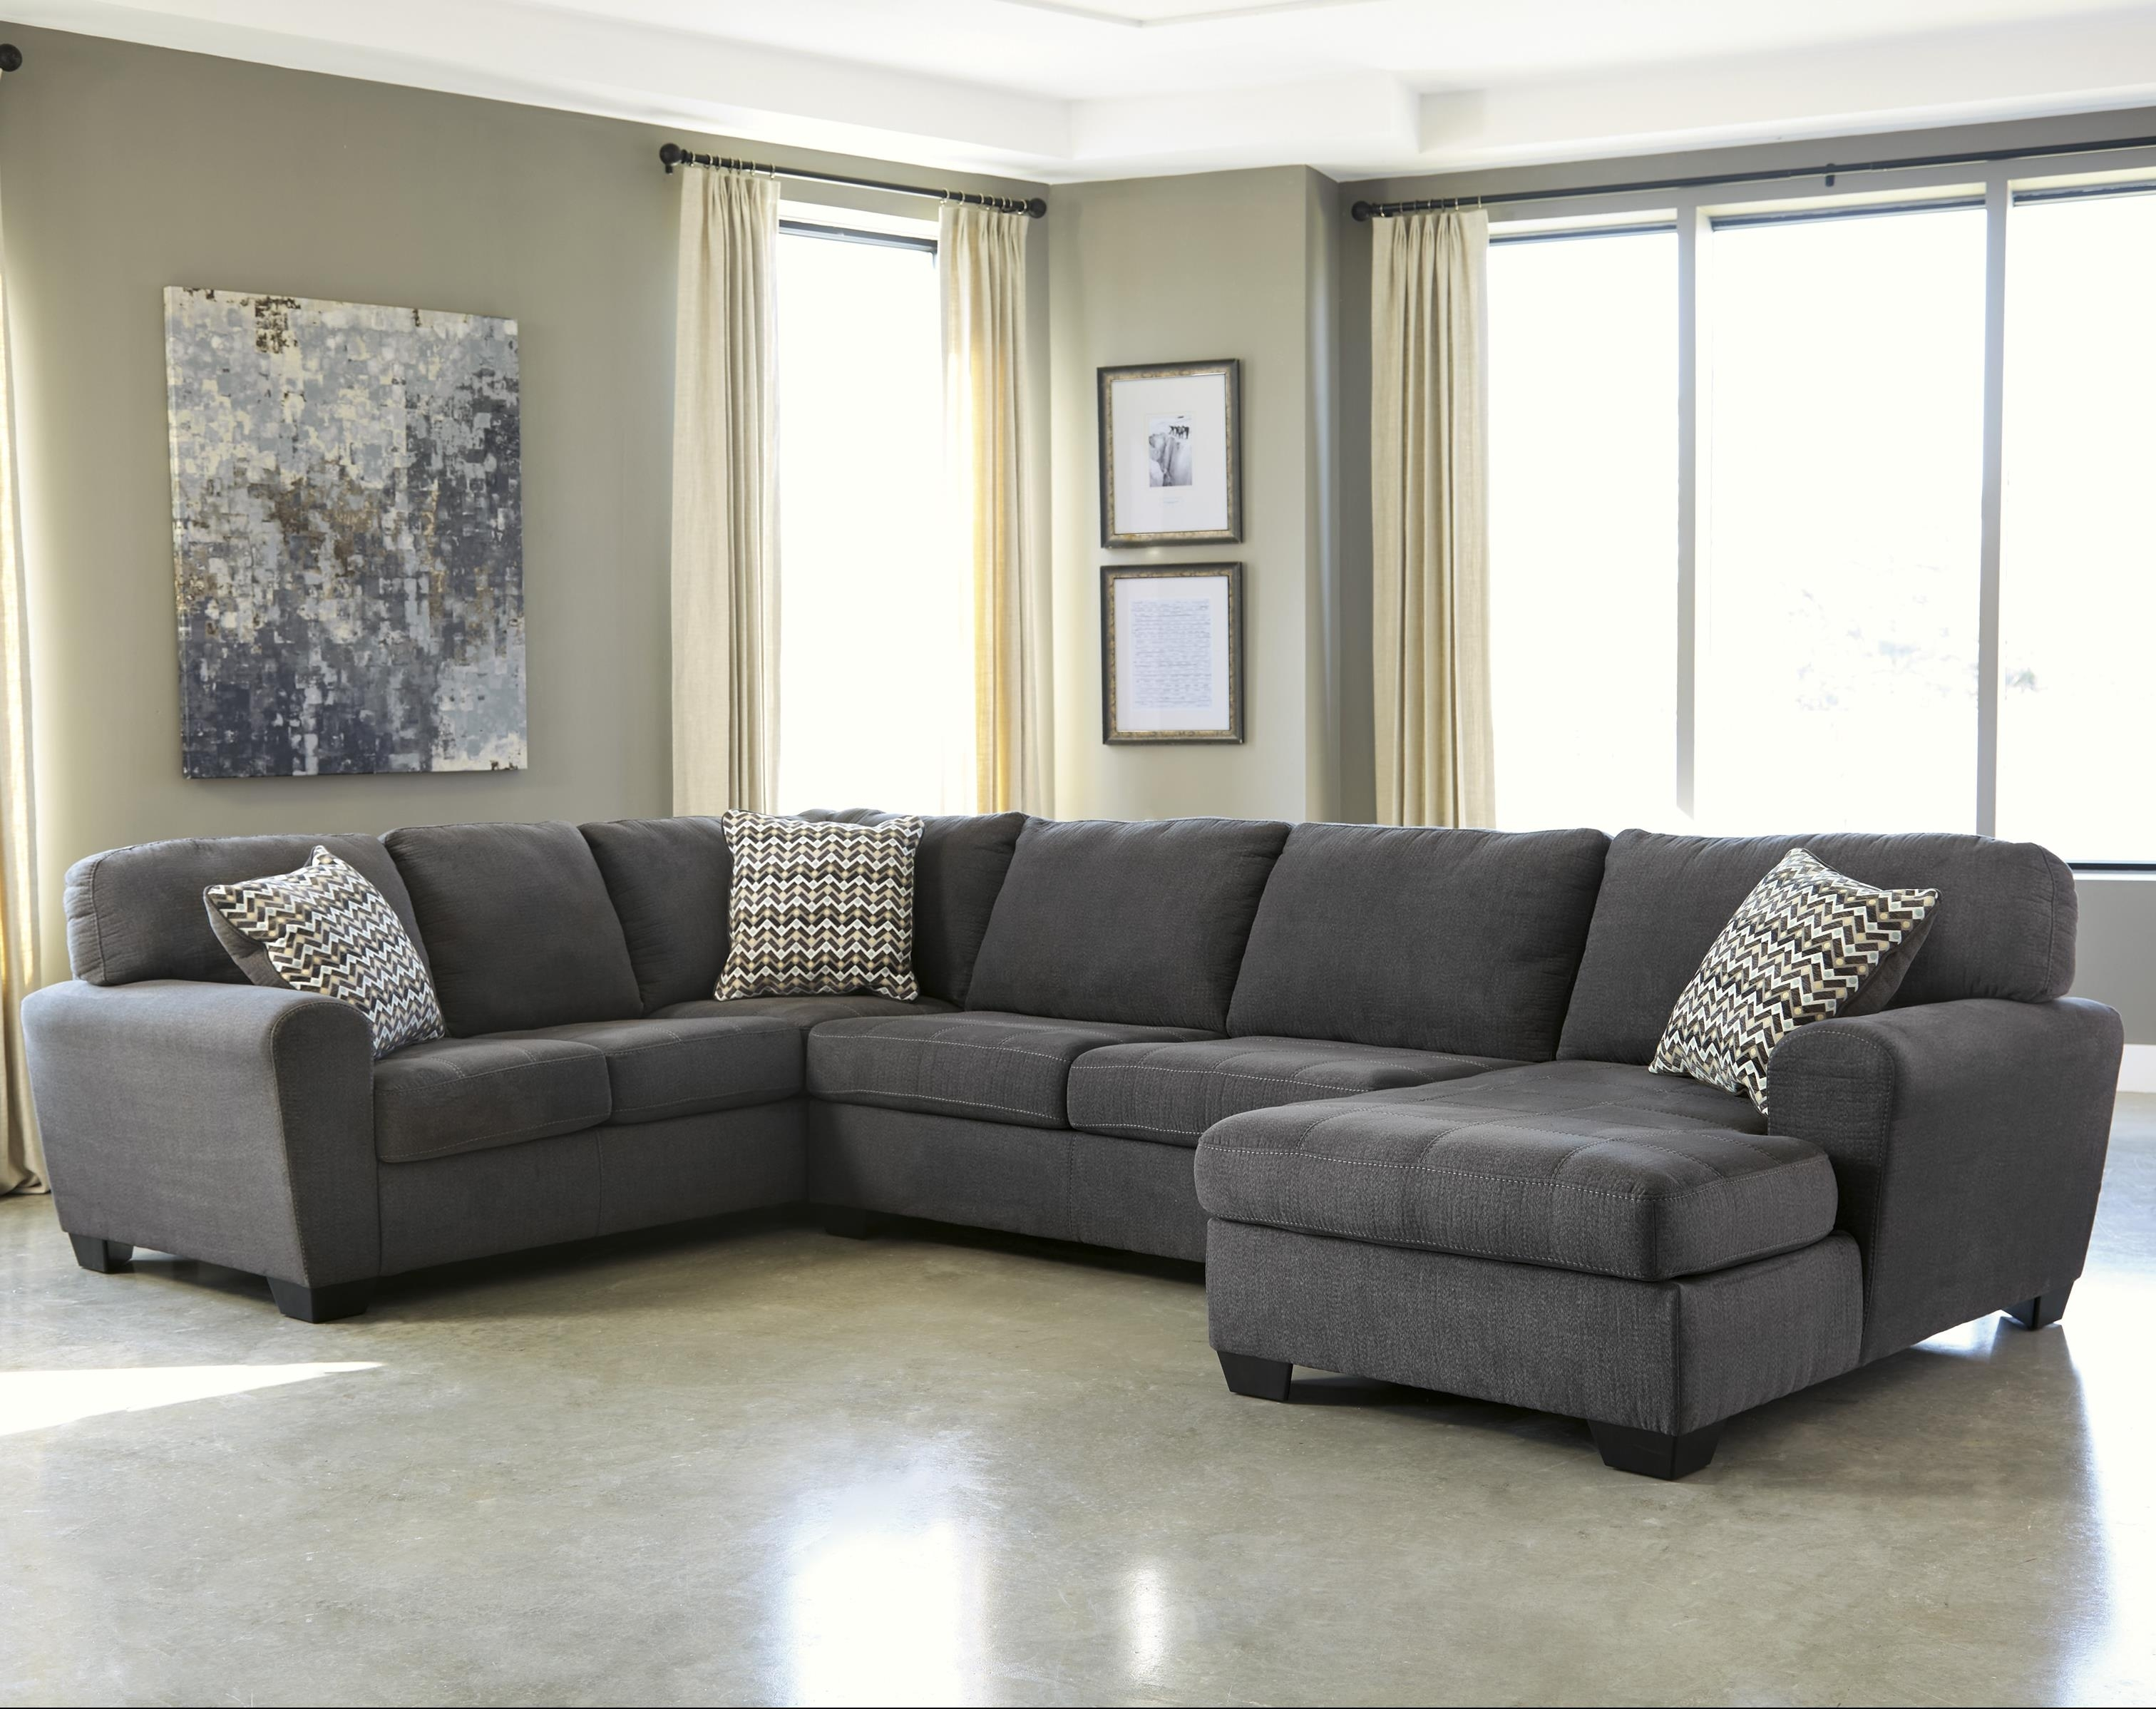 Three Piece Sectional Sofa – Home And Textiles inside Turdur 3 Piece Sectionals With Laf Loveseat (Image 29 of 30)